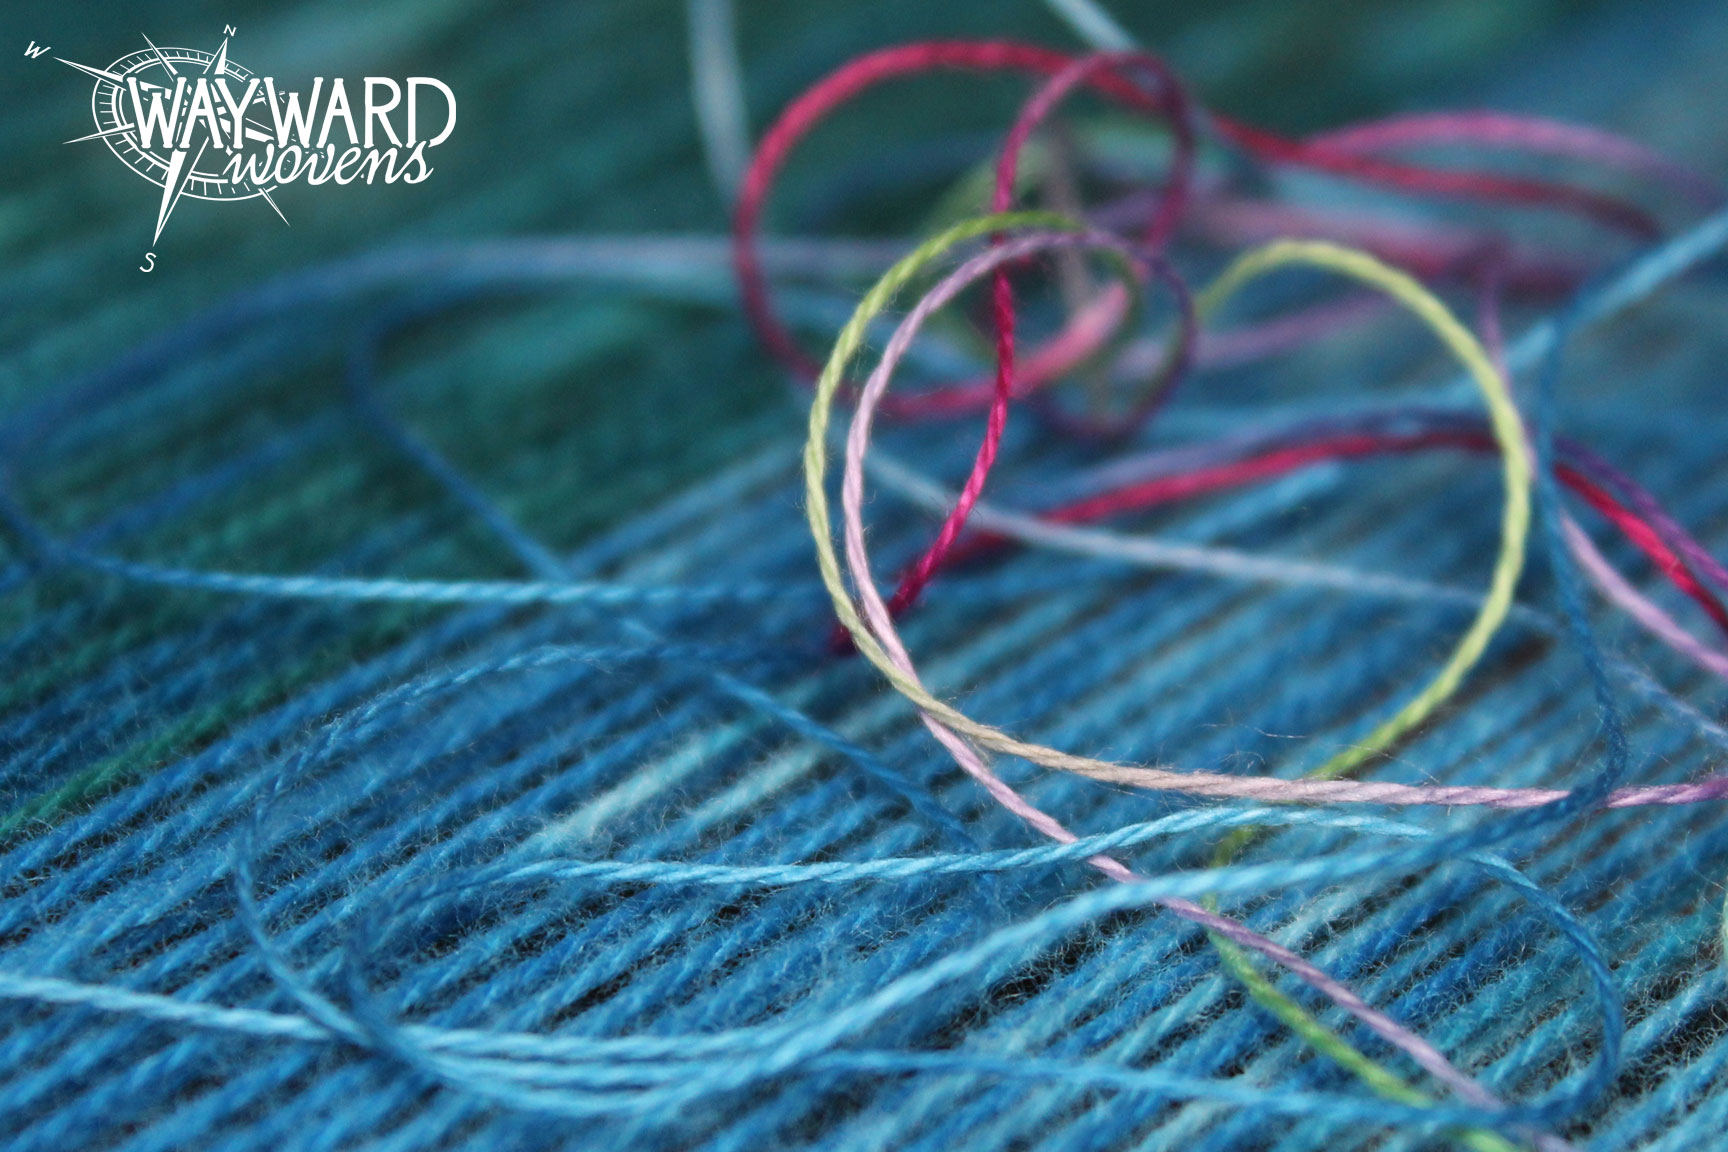 Warp threads with single weft thread